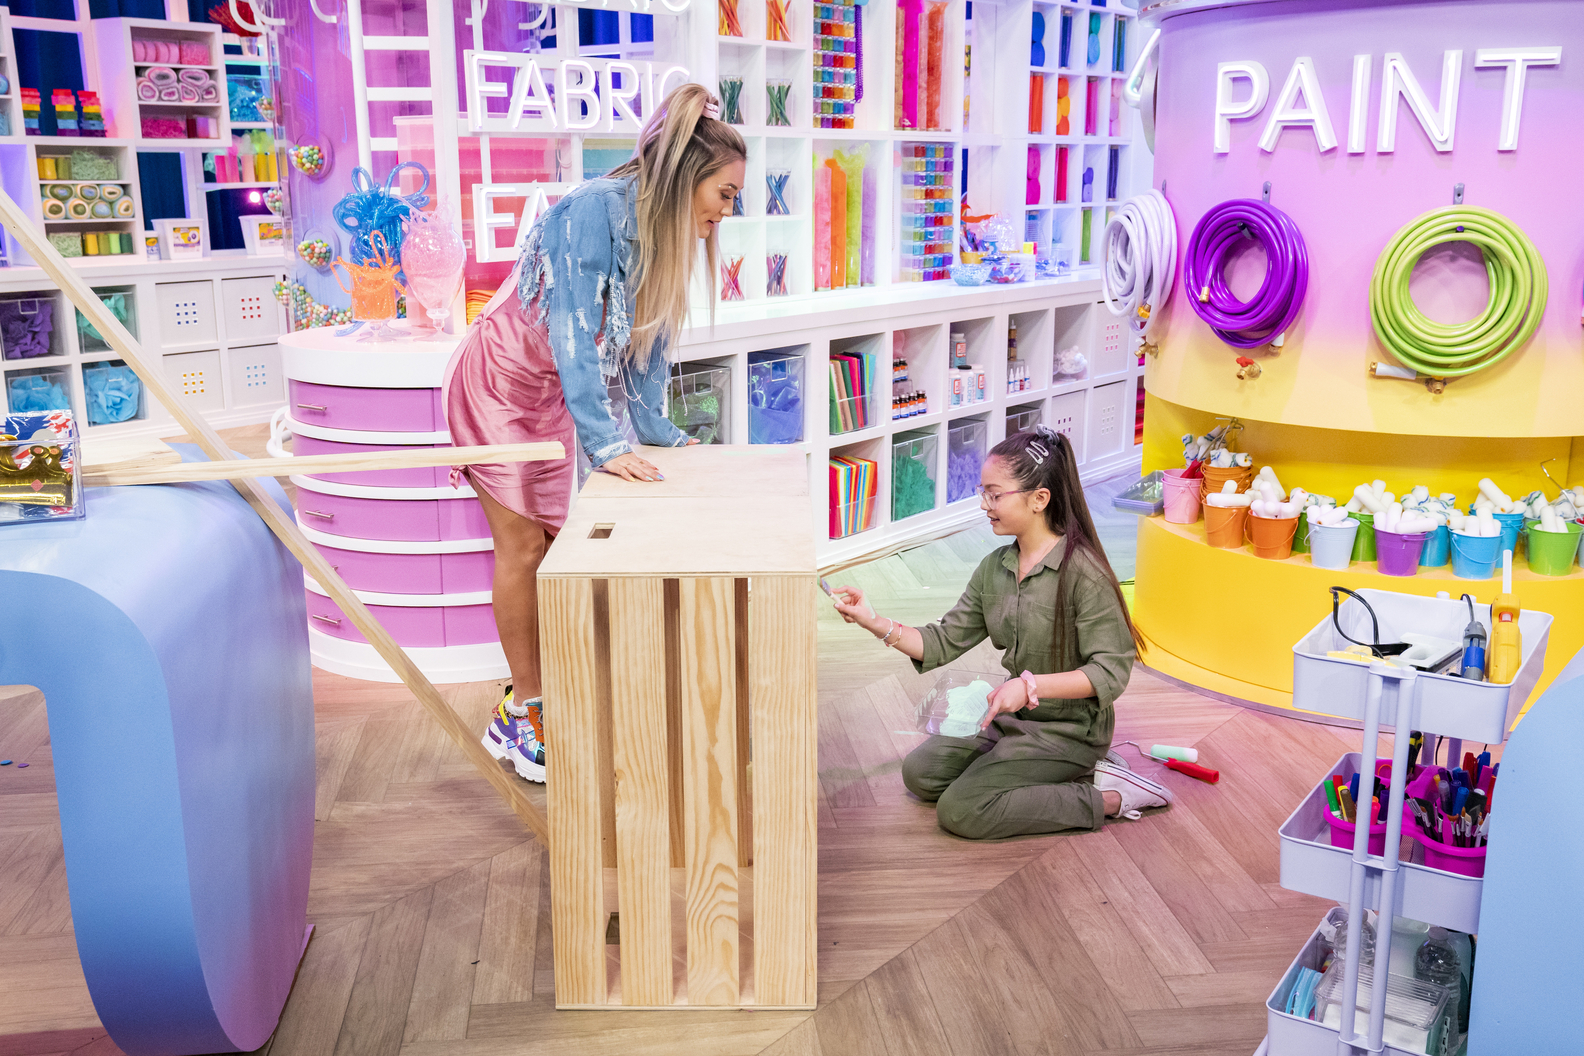 Looking for a new show to watch with your kids? Then you've got to check out Craftopia, an epic kids crafting competition show hosted and executive produced by YouTube influencer Lauren Riihimaki aka (LaurDIY).